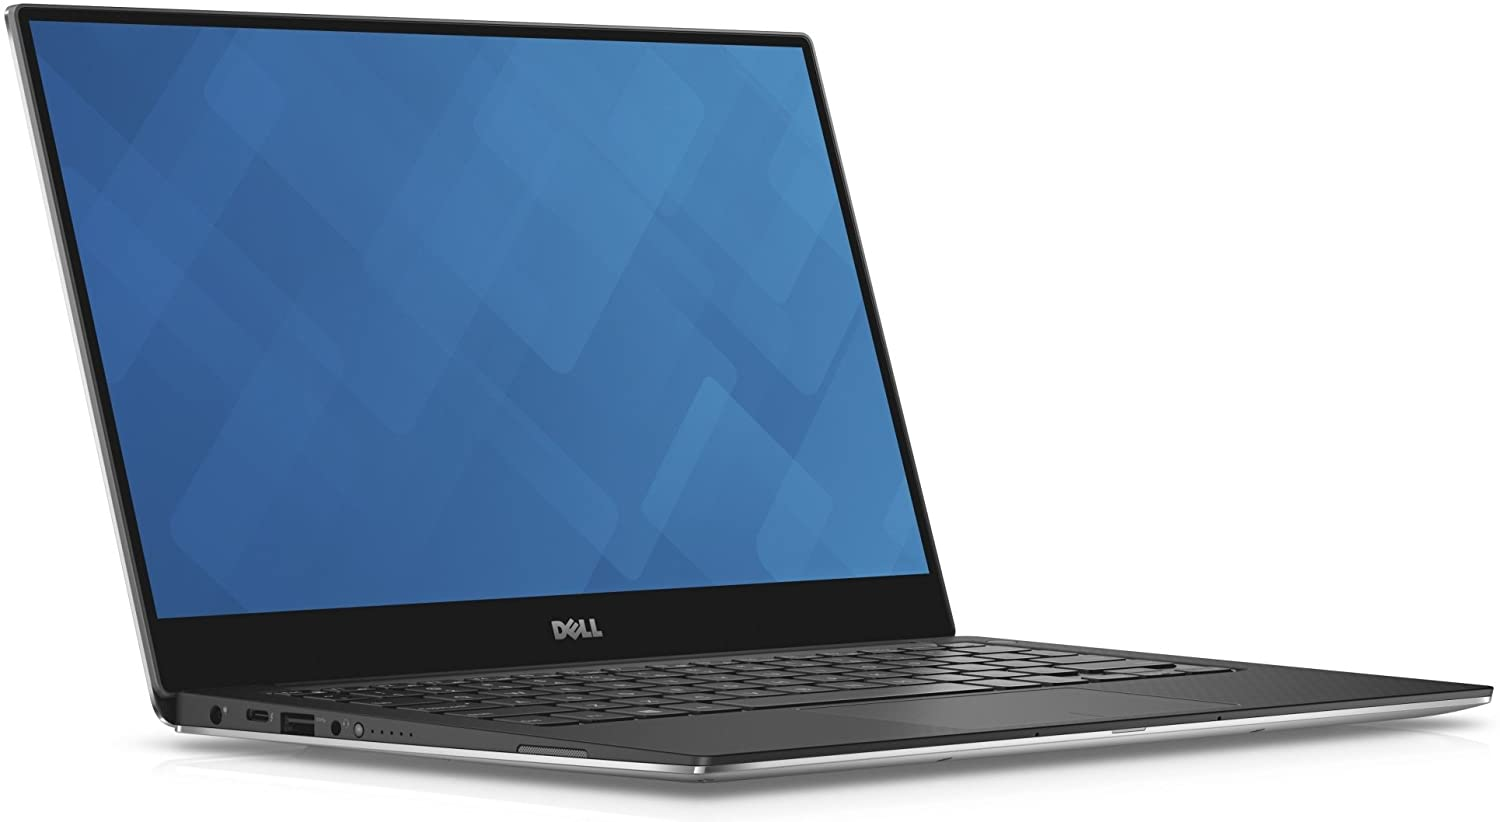 "Dell XPS 13 9360 13.3"" QHD+ Touch Laptop 8th Gen Intel Core i7-8550U 16GB RAM 256GB SSD Machined Aluminum Display Silver Win 10"